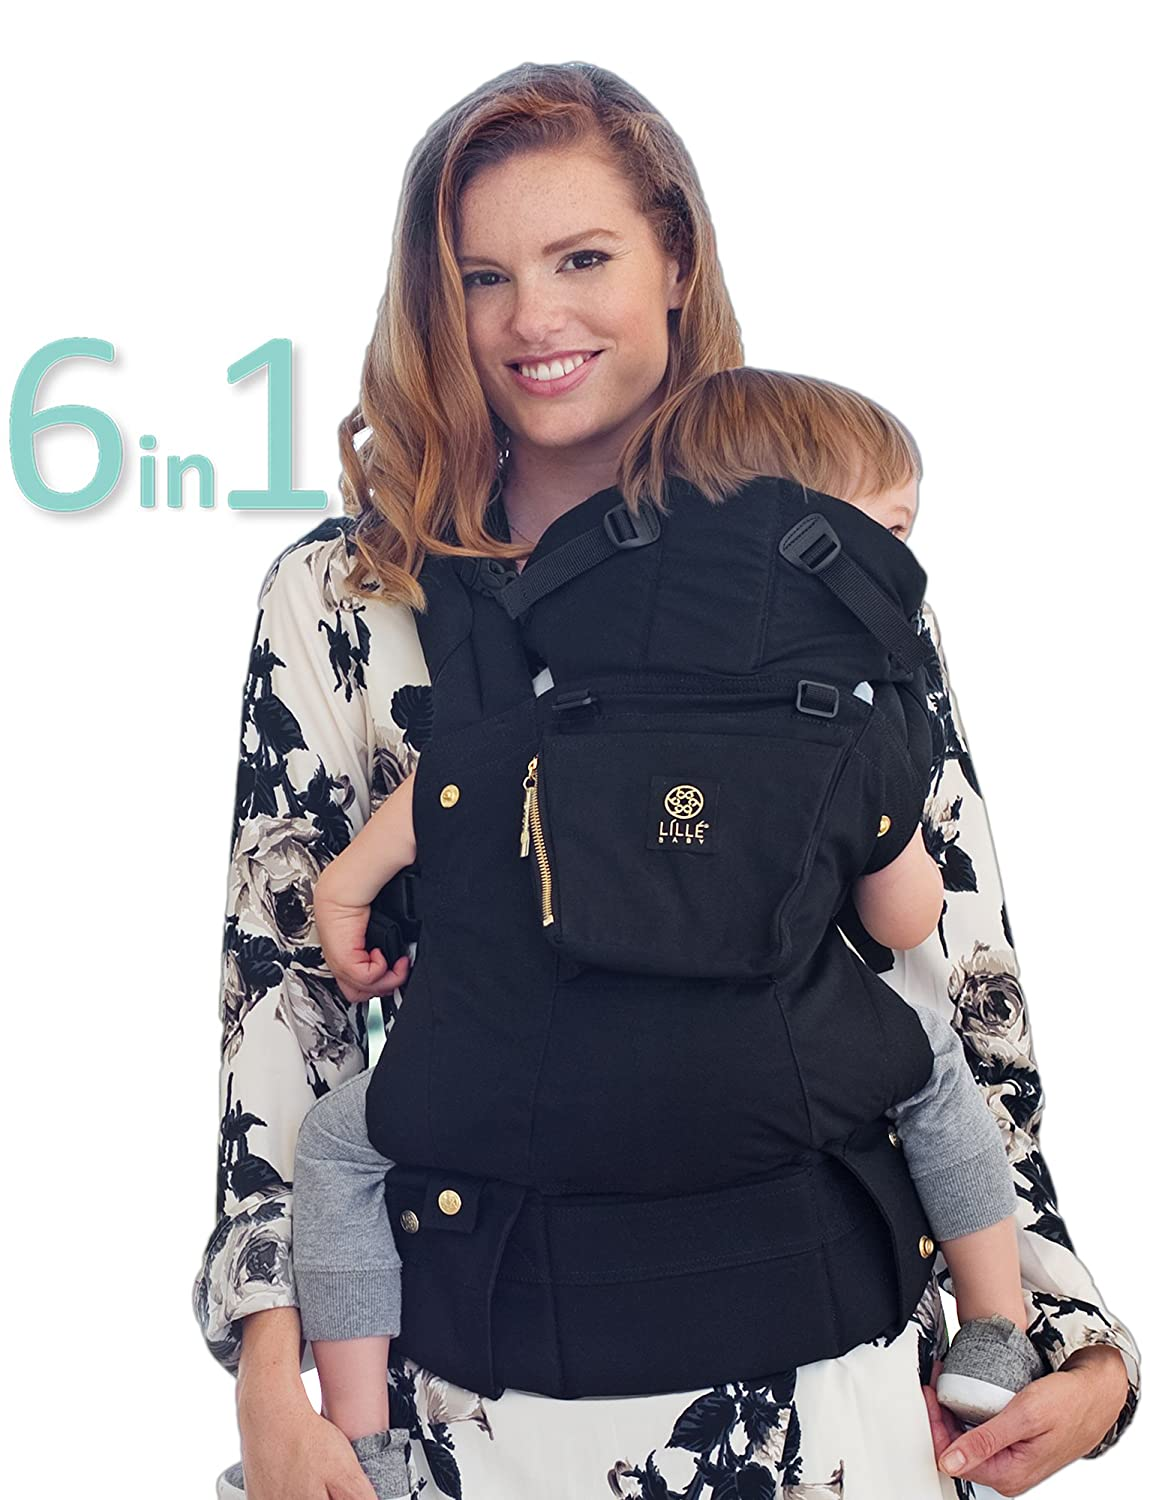 LÍLLÉbaby The COMPLETE Original SIX-Position, 360° Ergonomic Baby & Child Carrier, Charcoal/Black - Cotton Baby Carrier, Comfortable and Ergonomic, Multi-Position Carrying for Infants Babies Toddlers LILLEbaby SC-1C-104P